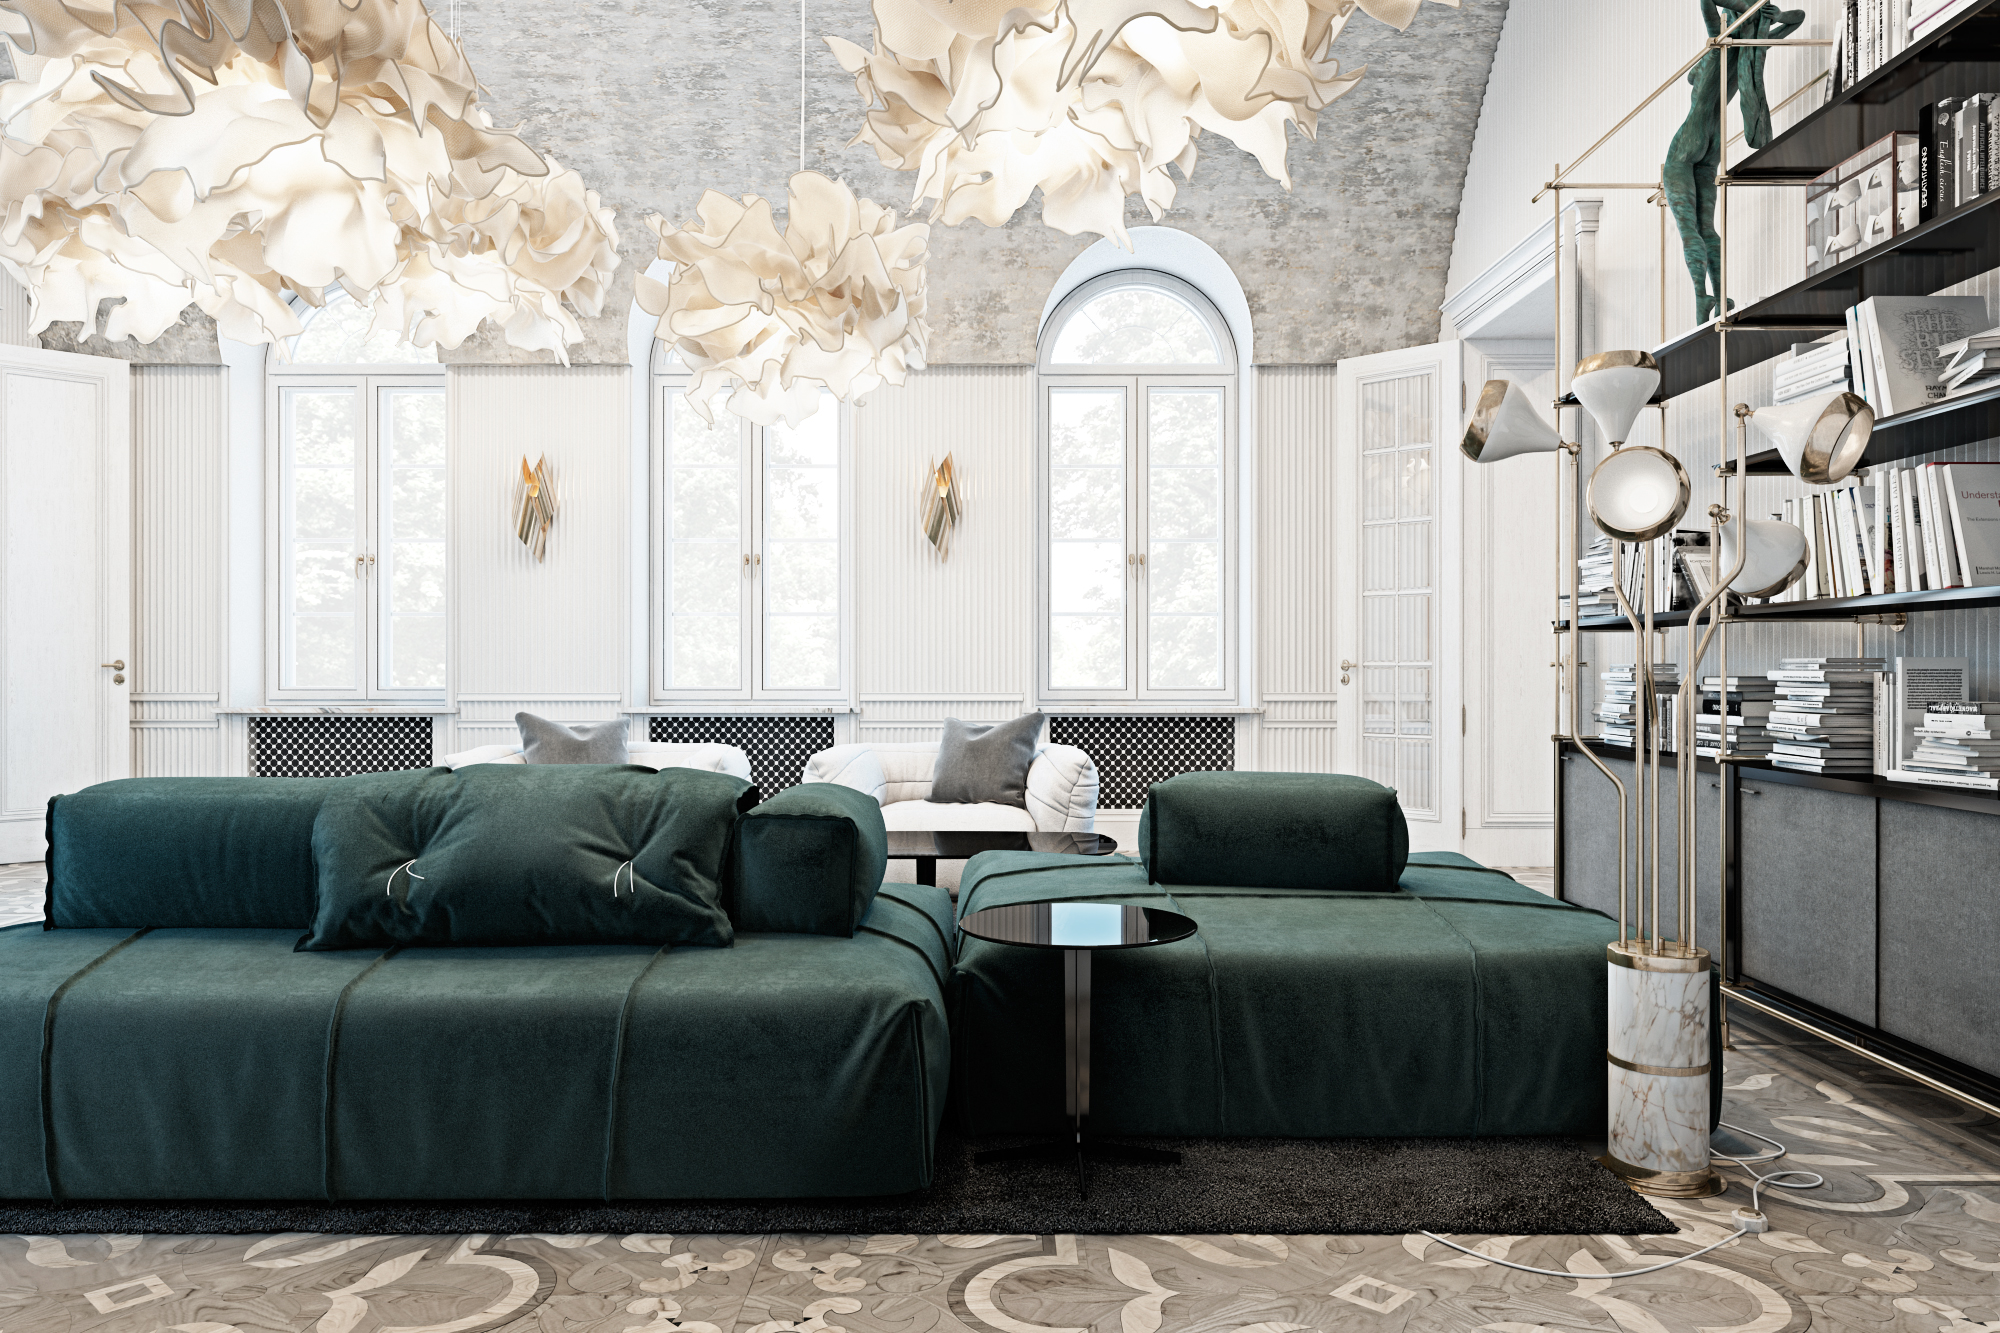 Exquisite private residence project in Italy luxxu at euroluce What To Expect From LUXXU At Euroluce Exquisite private residence project in Italy luxxu at euroluce What To Expect From LUXXU At Euroluce Exquisite private residence project in Italy